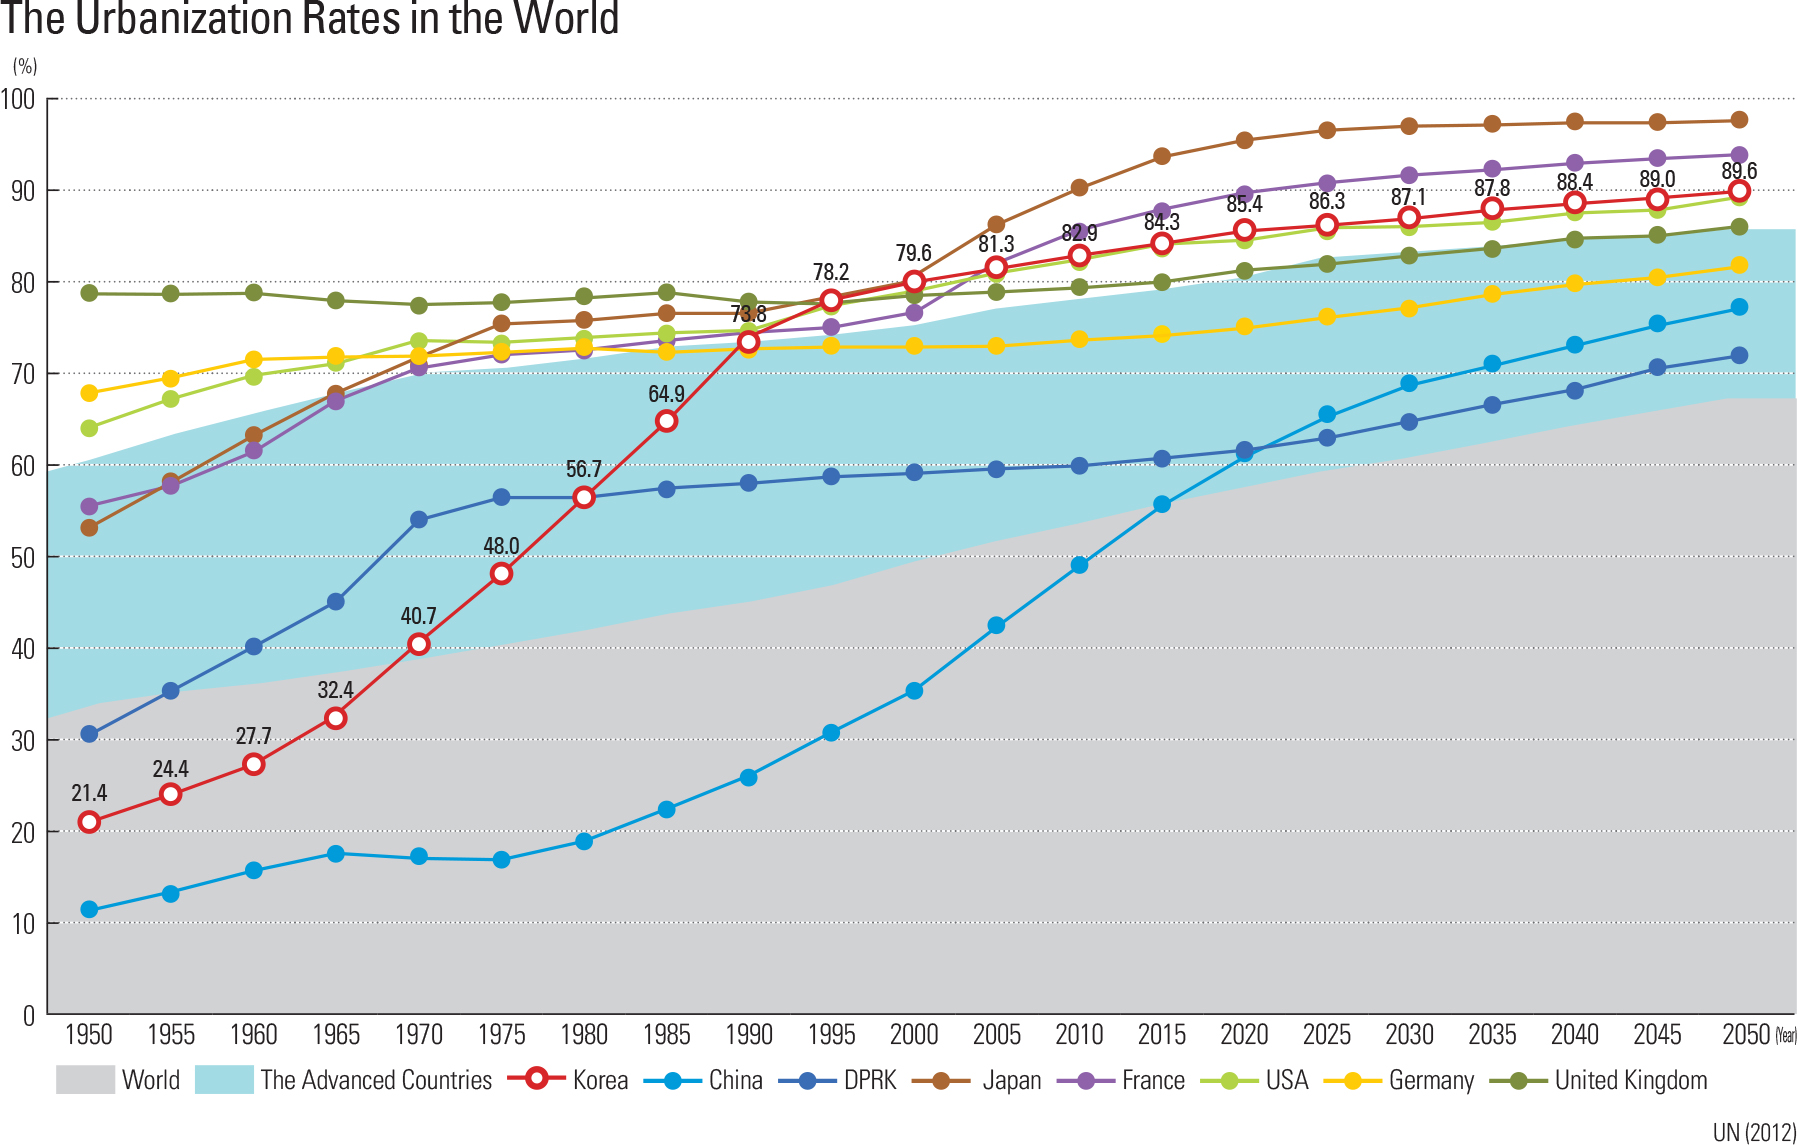 The Urbanization Rates in the World